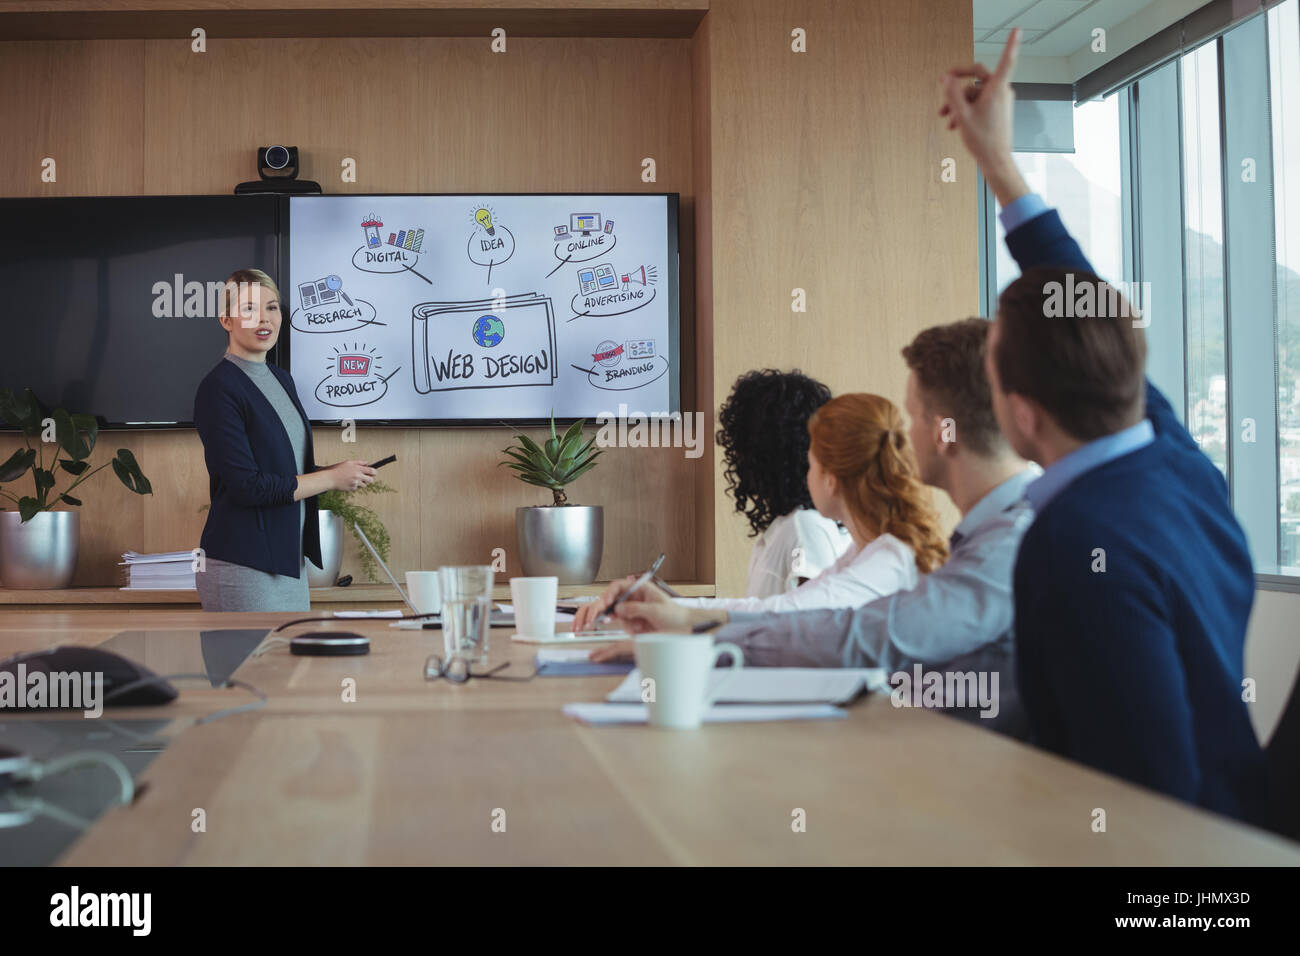 Businesswoman interacting with team during meeting at conference table in board room - Stock Image